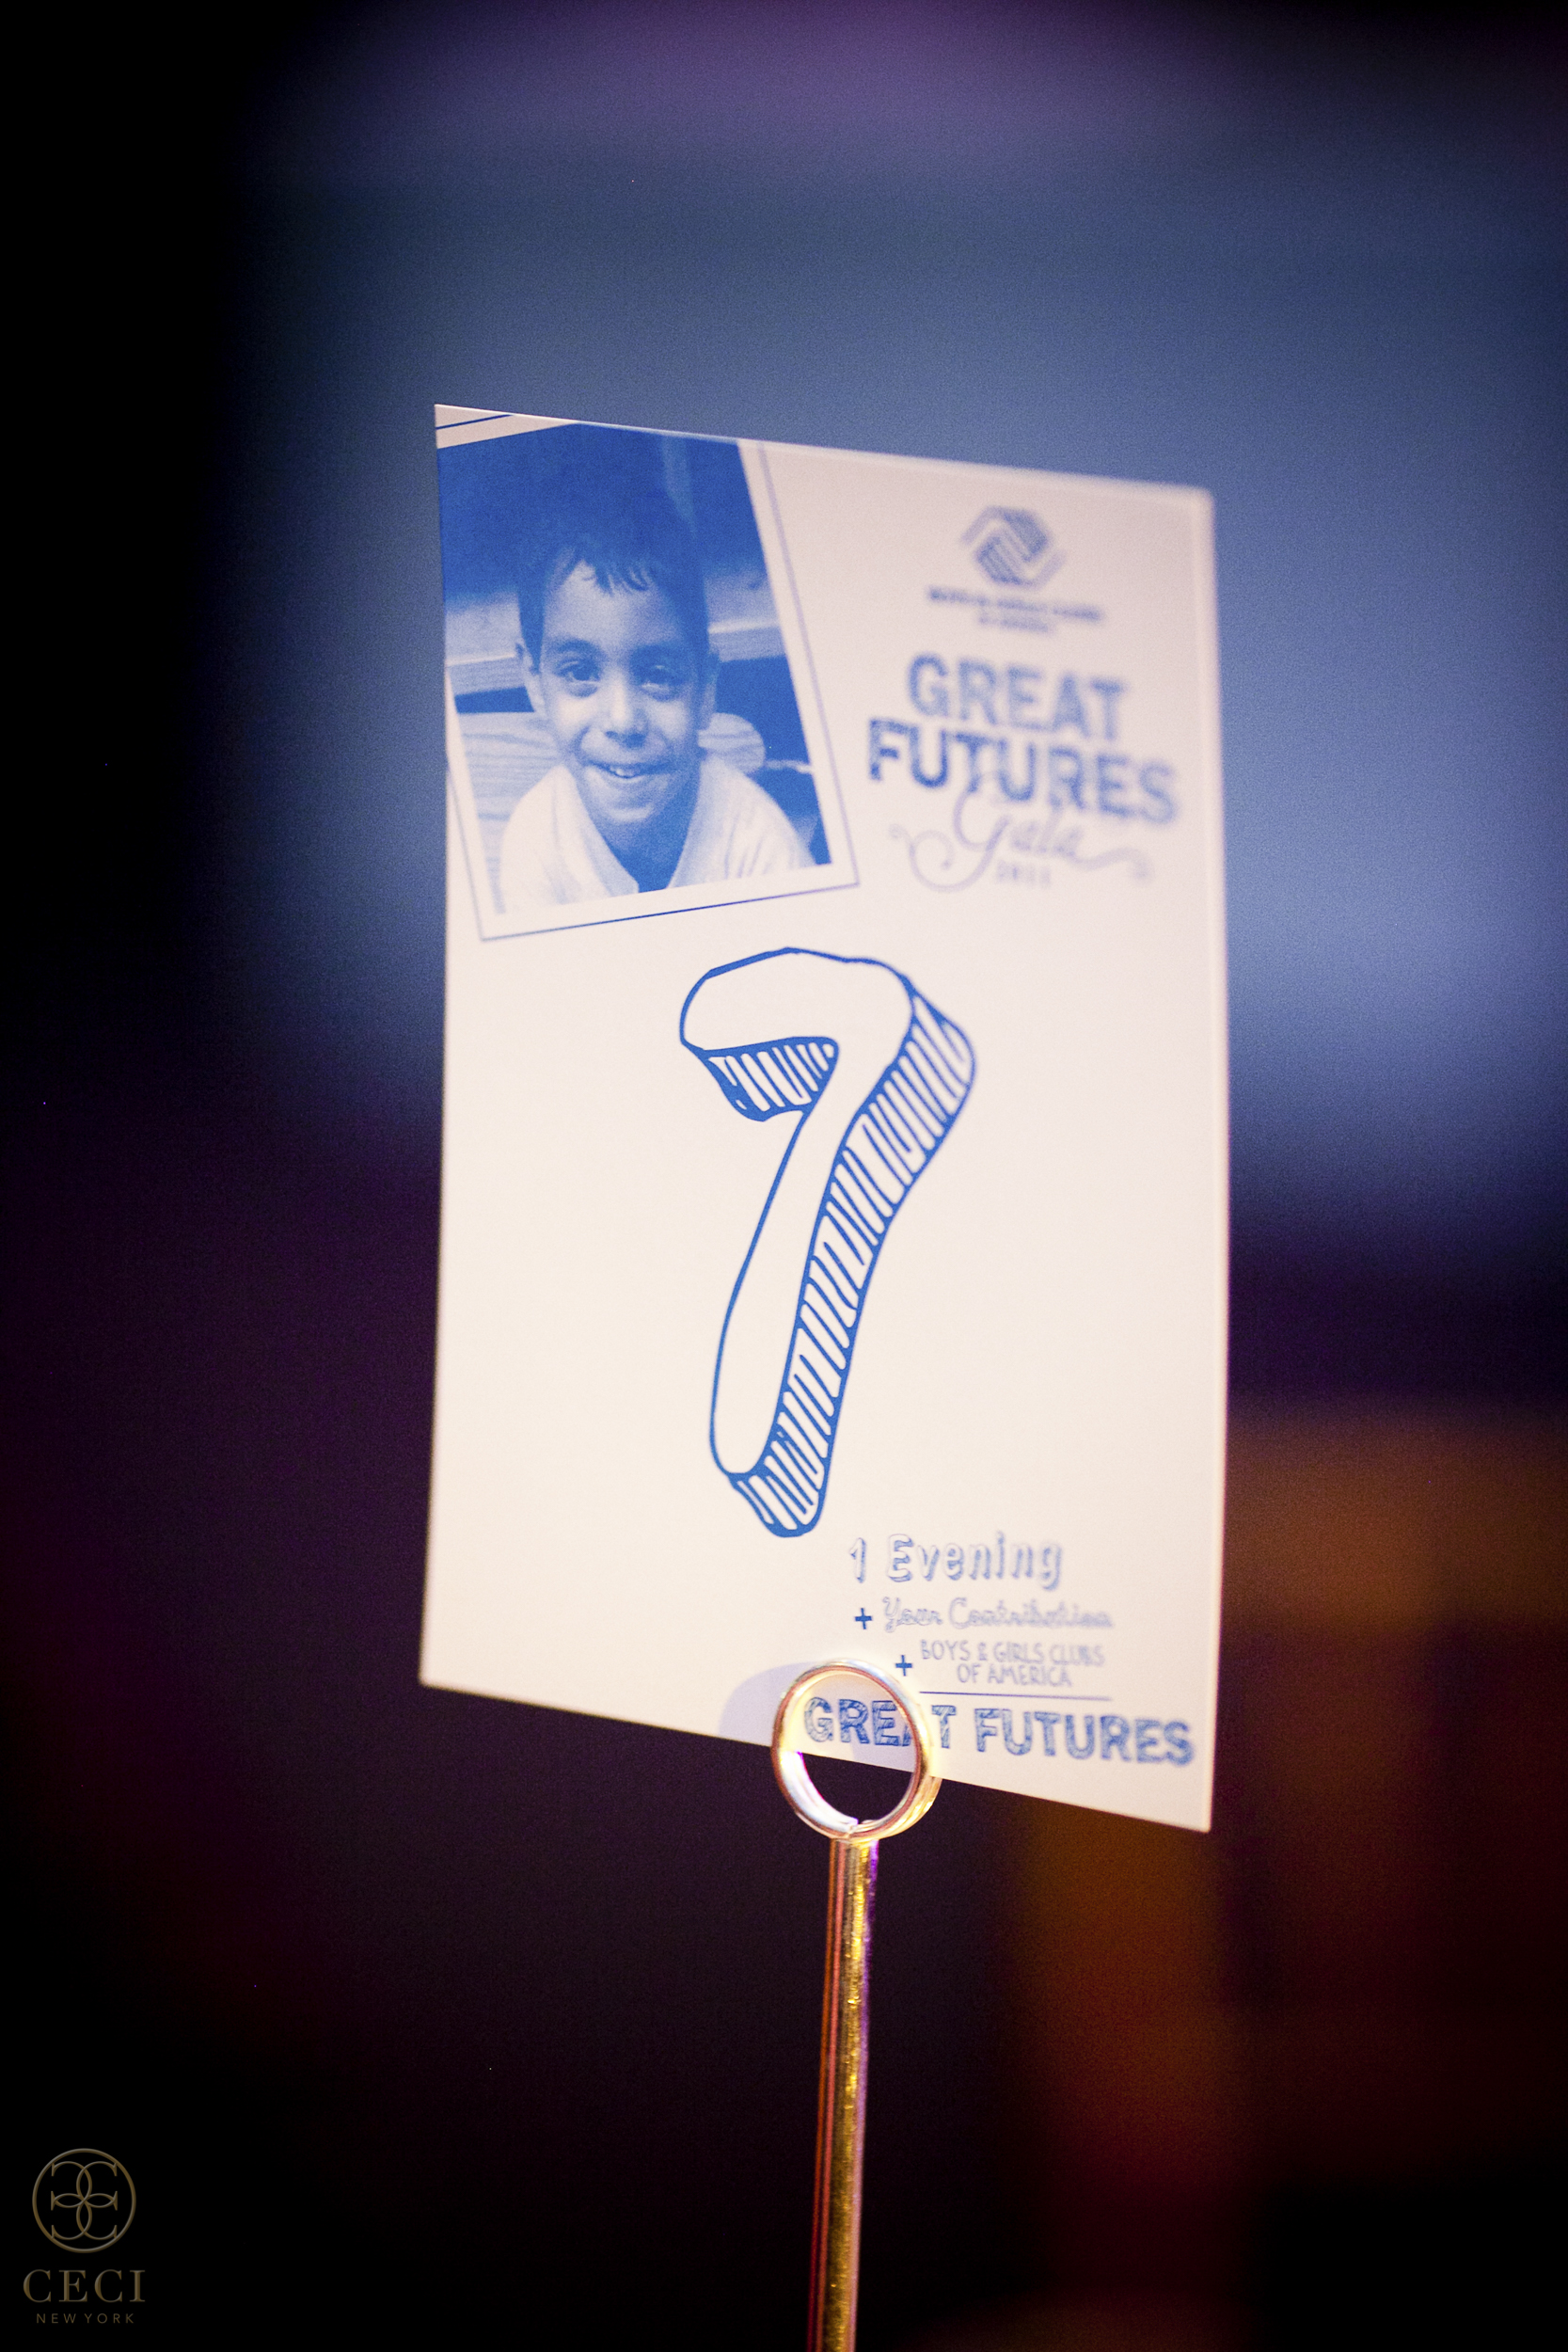 ceci-new-york-gives-back-boys-and-girls-club-of-america-great-futures-gala-2011-invitations-party-decor--1.jpg